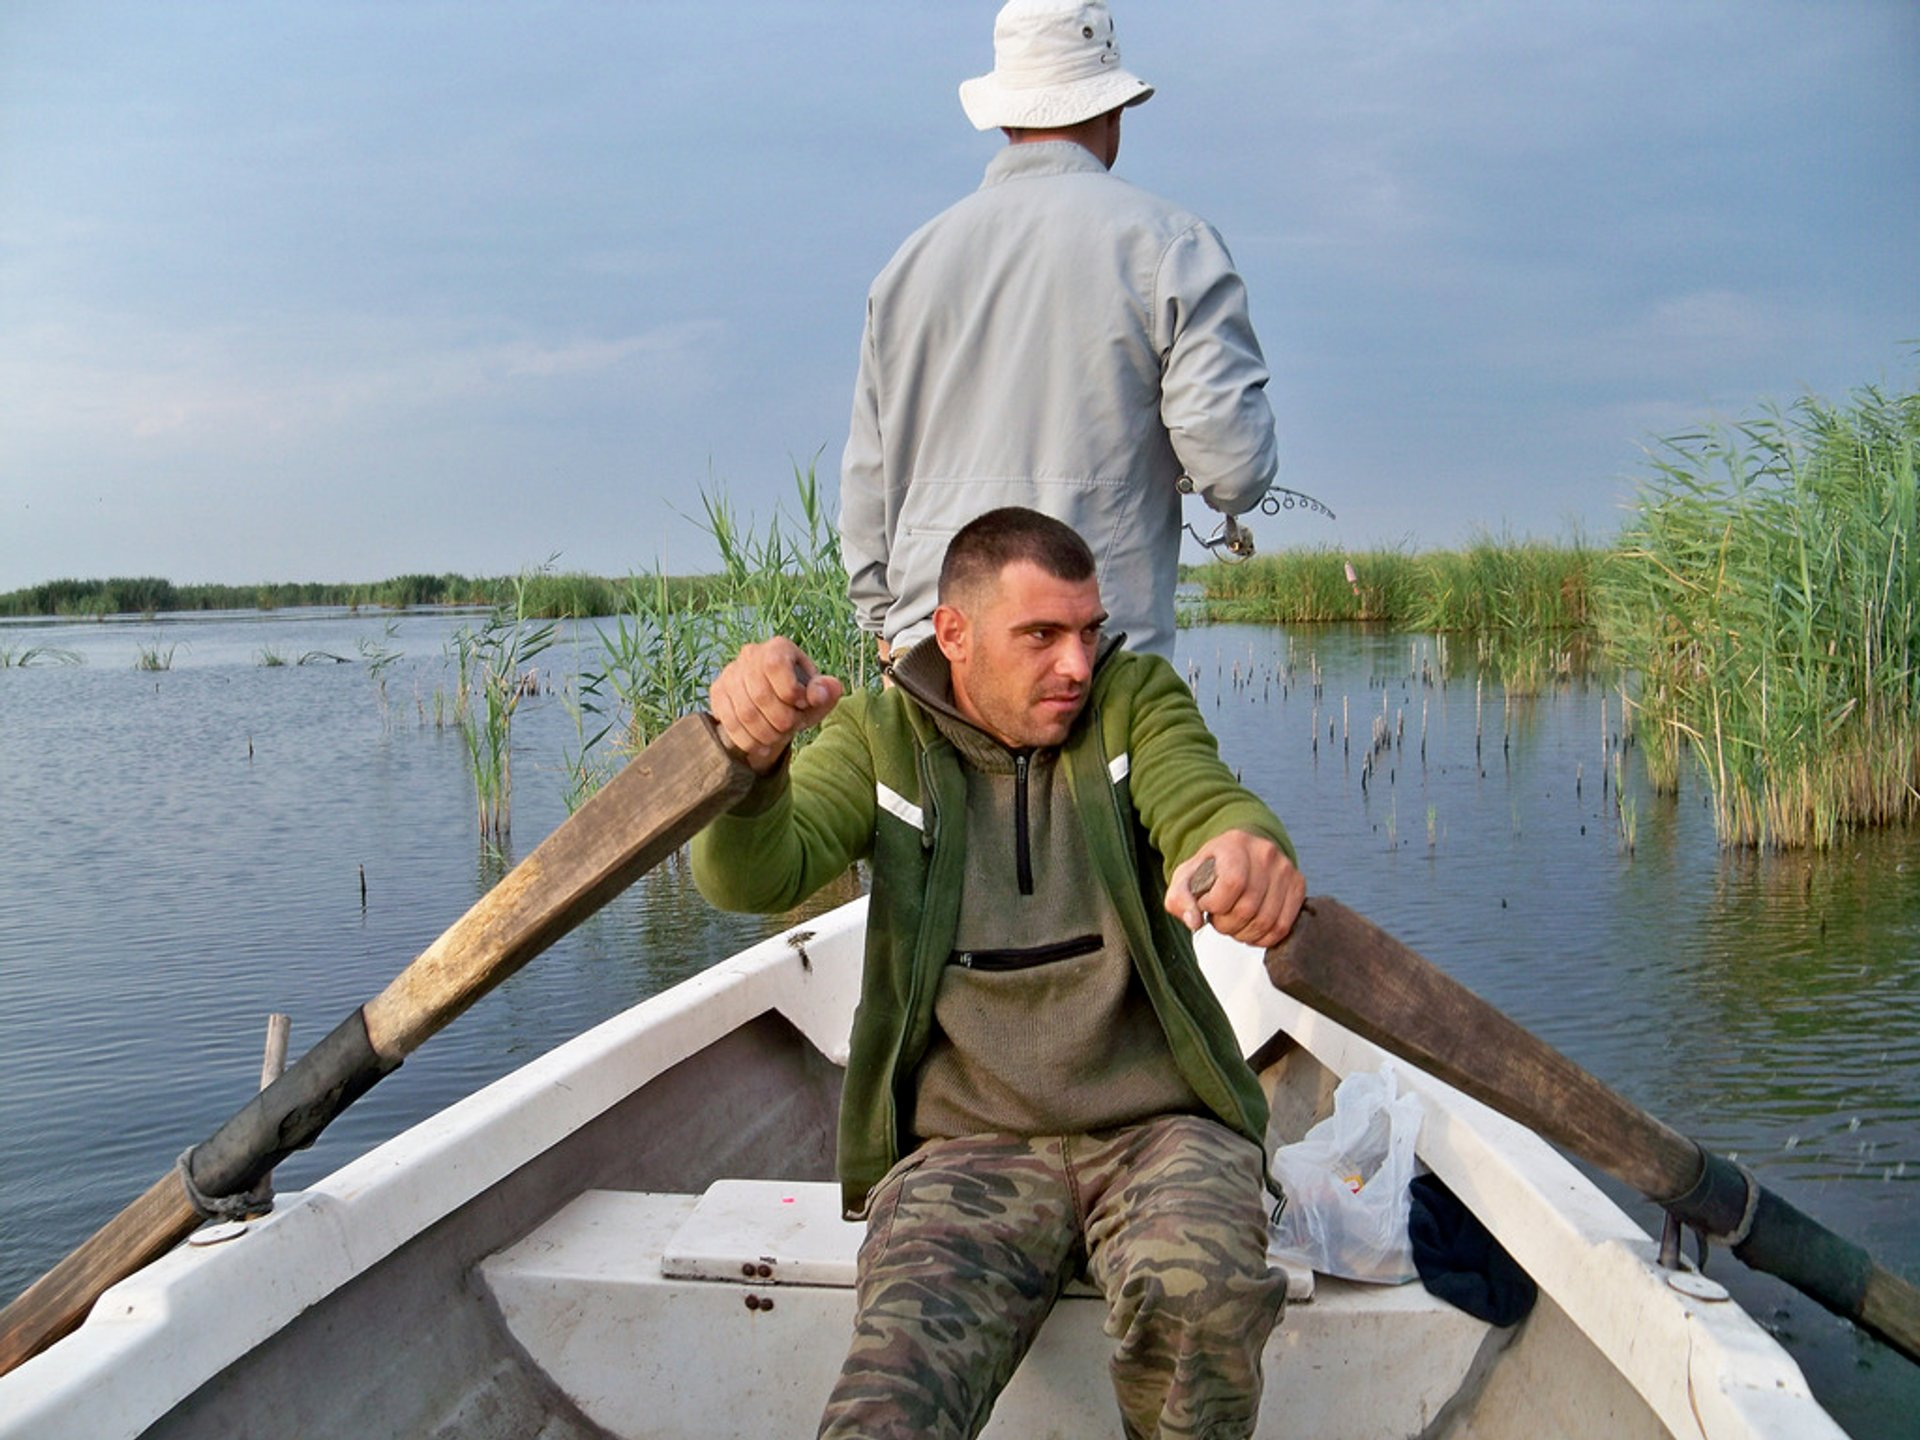 Going for fishing on the Danube Delta 2020